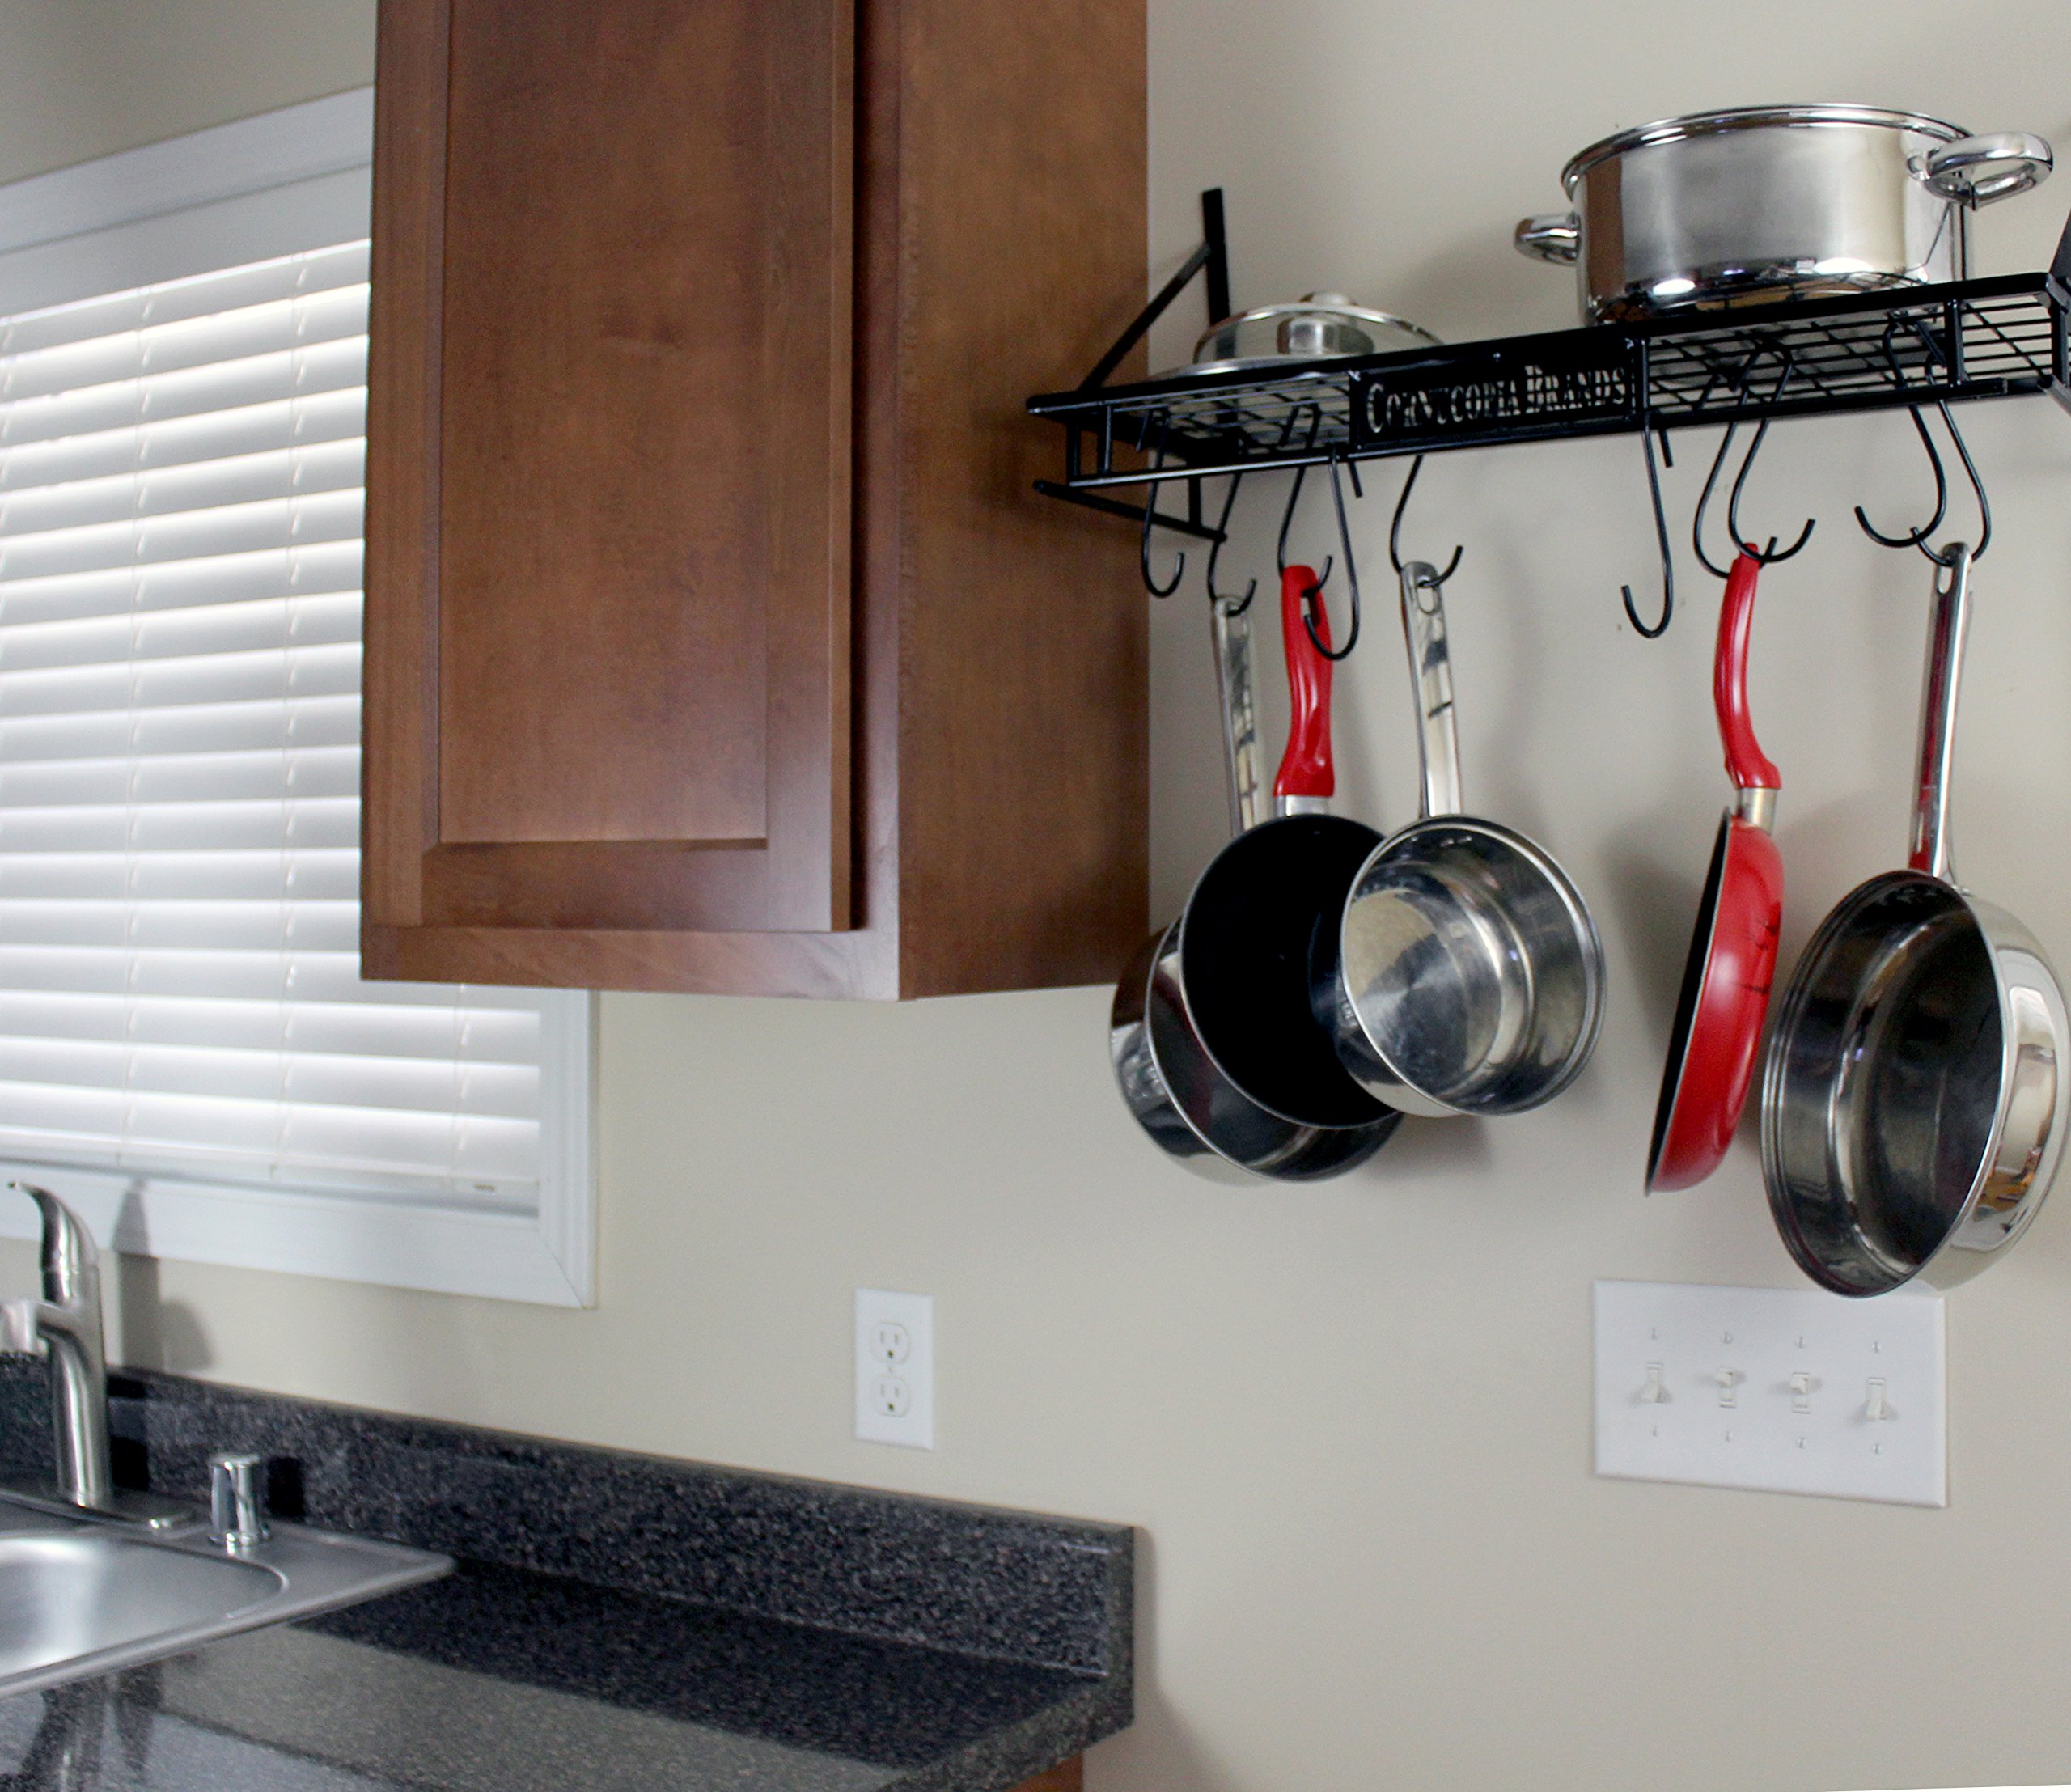 Wall-Mounted Pot Hanging Rack, 24 by 10 Inches, All-Black Decorative Kitchen Shelf w/ 10 S-Hooks by Cornucopia Brands (Image #5)